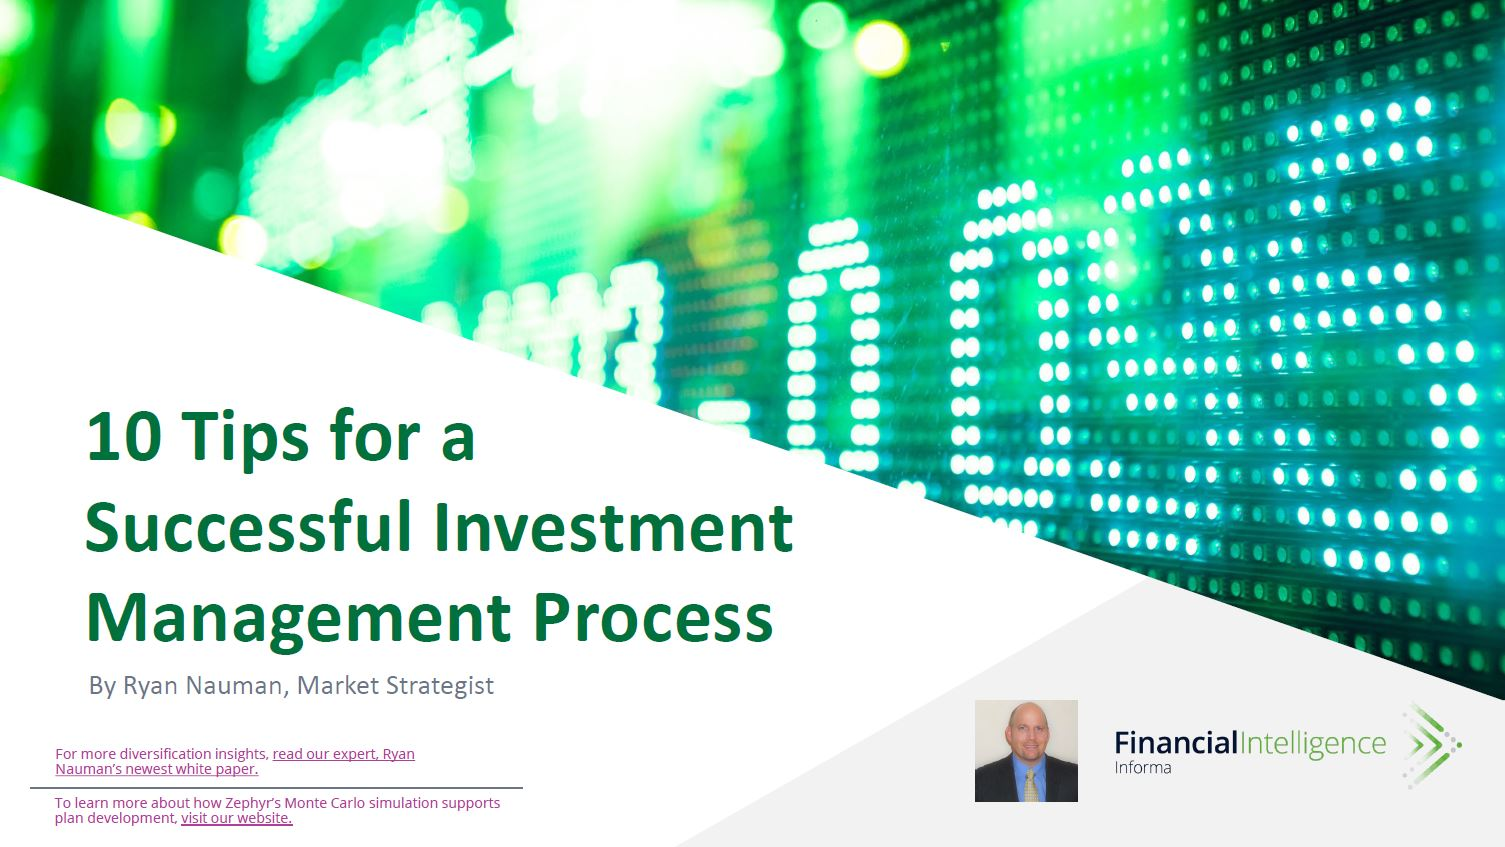 10 Tips for a Successful Investment Management Process